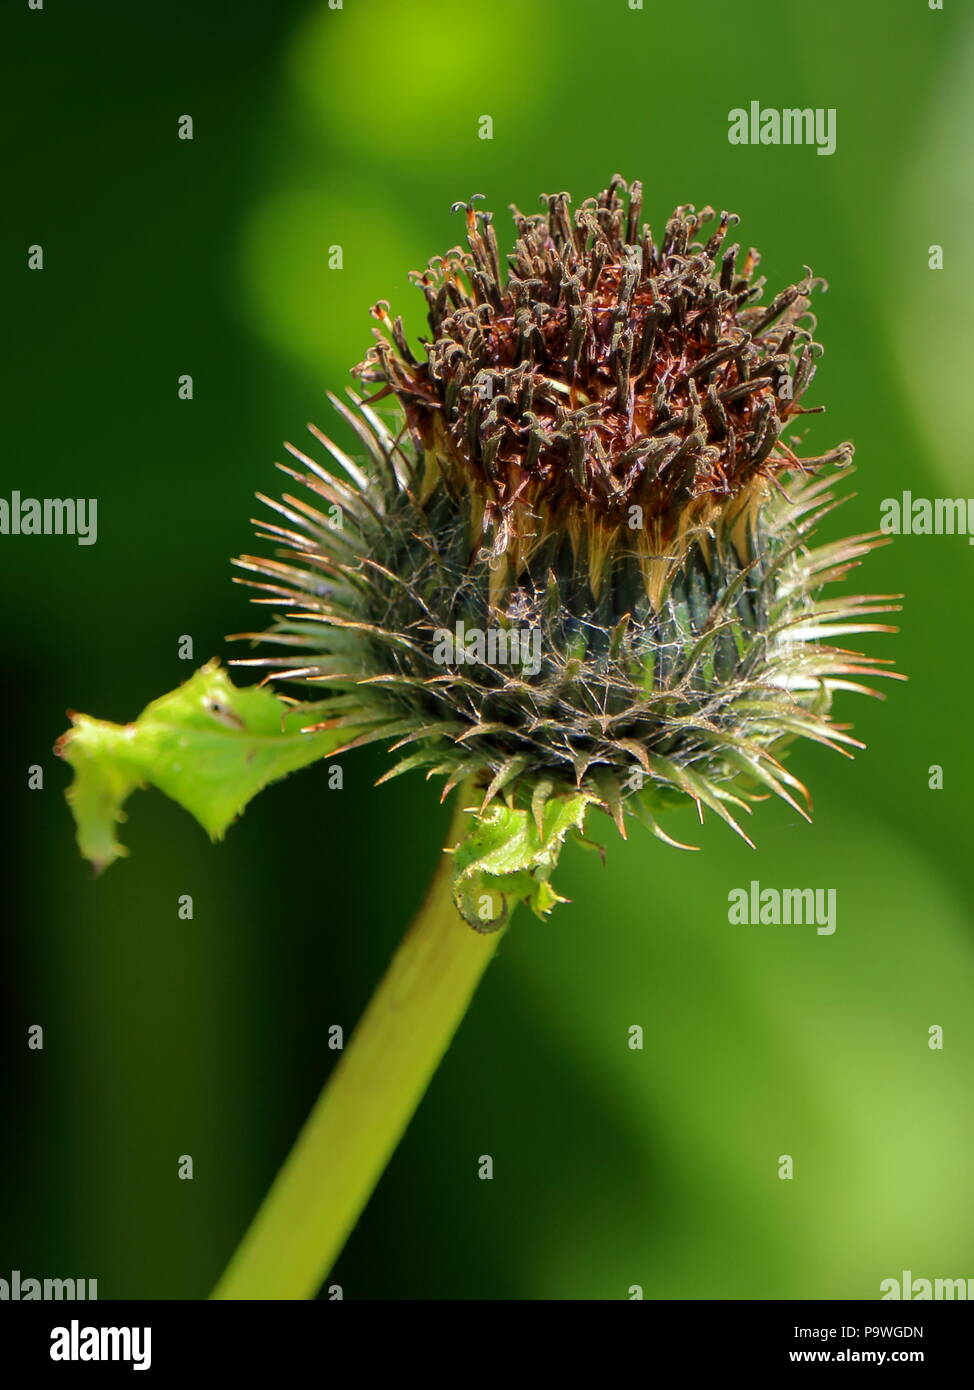 Costus, species of thistle, medicinal plant native to India - Stock Image